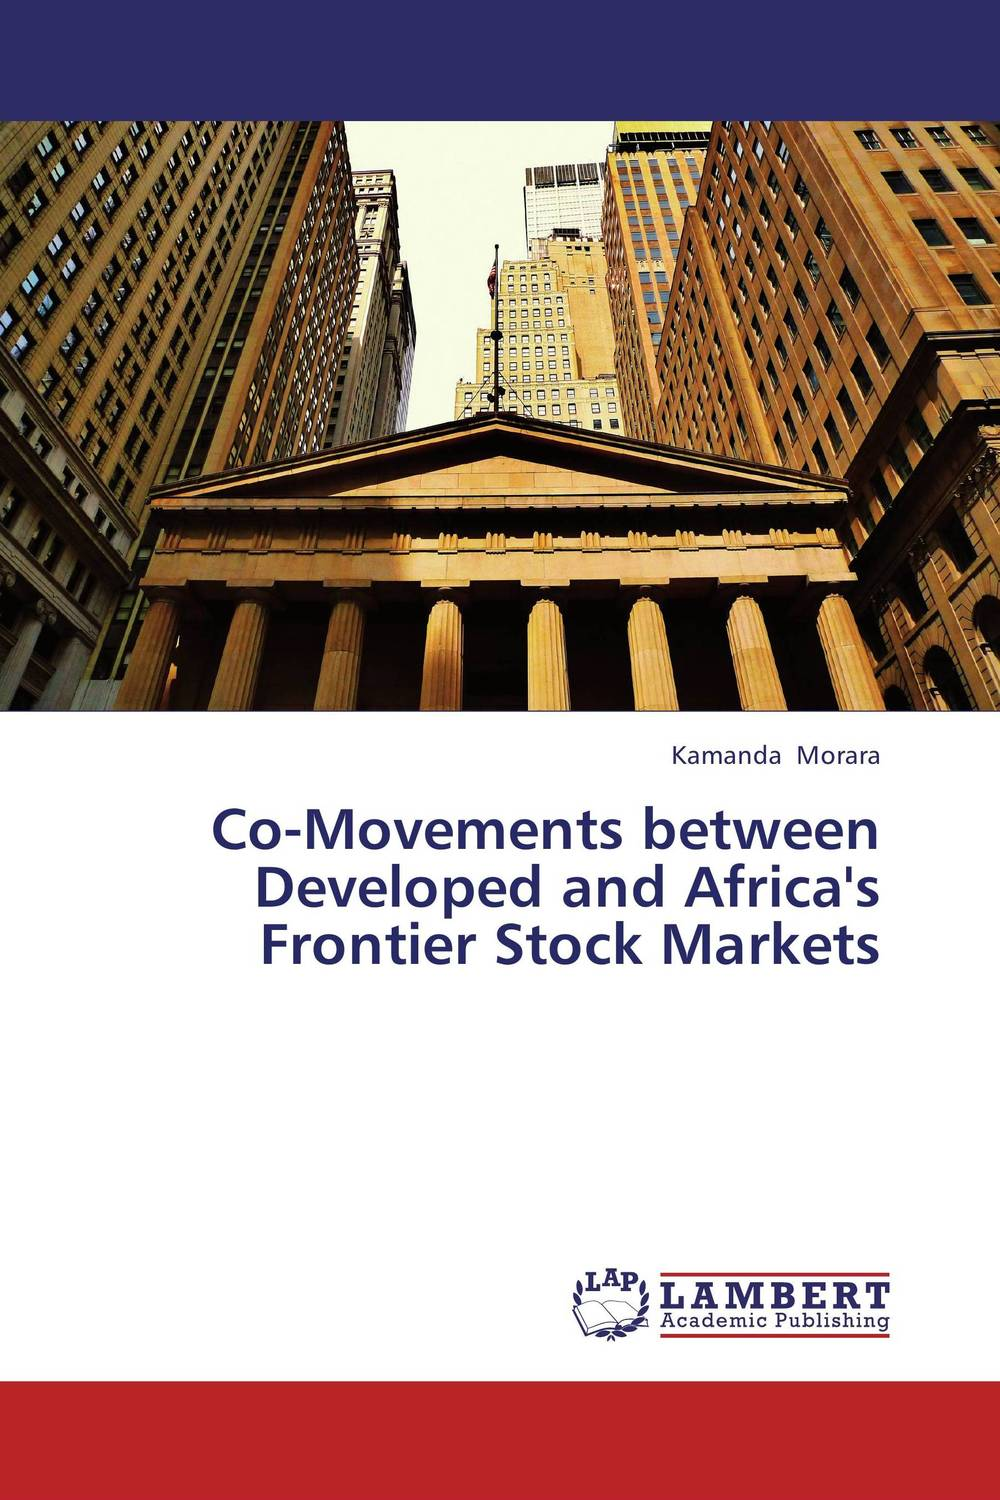 Co-Movements between Developed and Africa's Frontier Stock Markets seasoned equity offerings in an emerging market